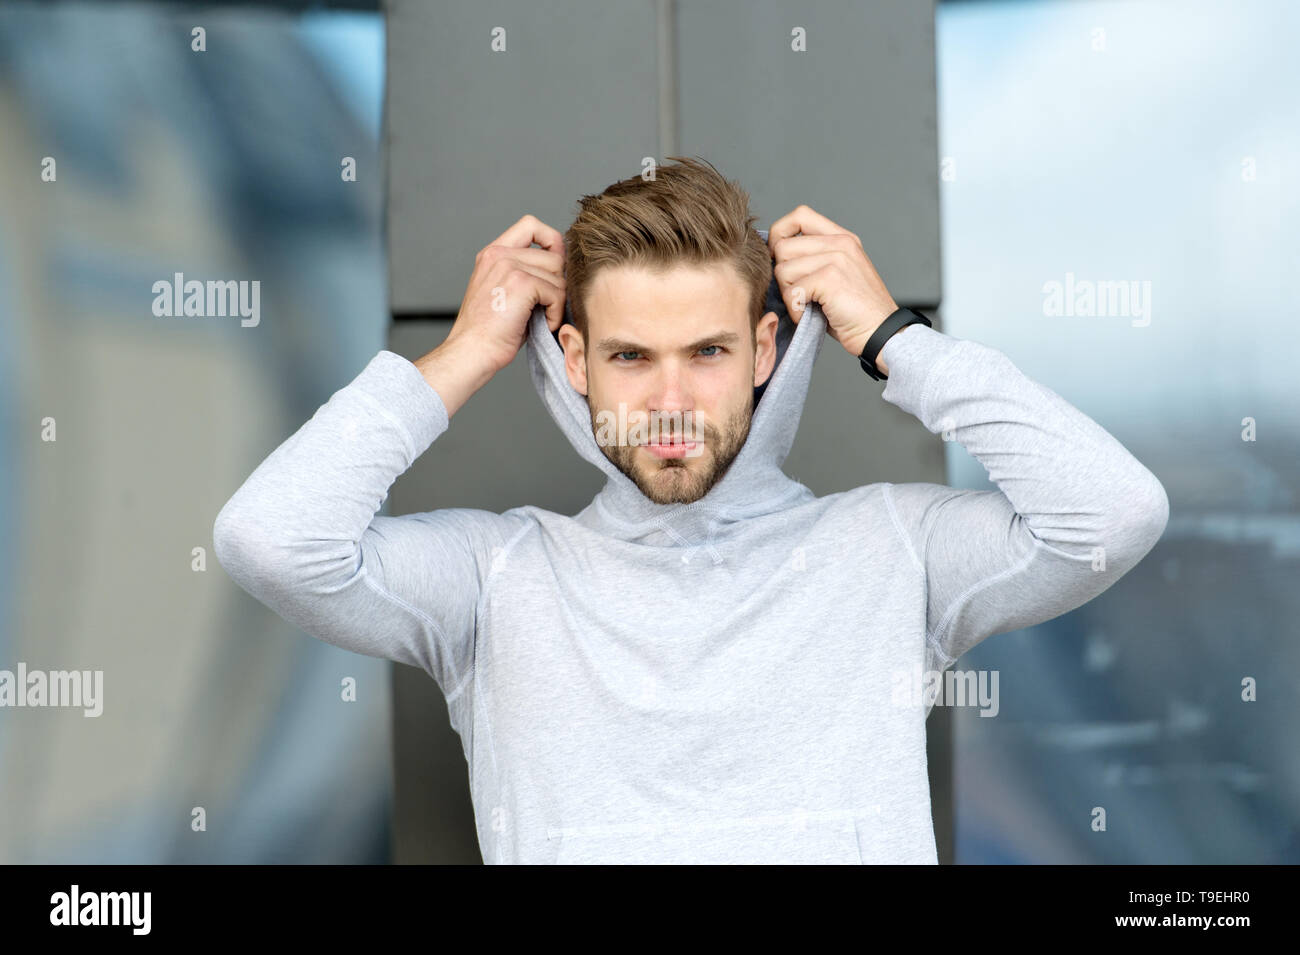 Feeling casual. Guy bearded attractive casual hooded. Man with bristle serious face, urban background, defocused. Man unshaven guy looks handsome casu - Stock Image